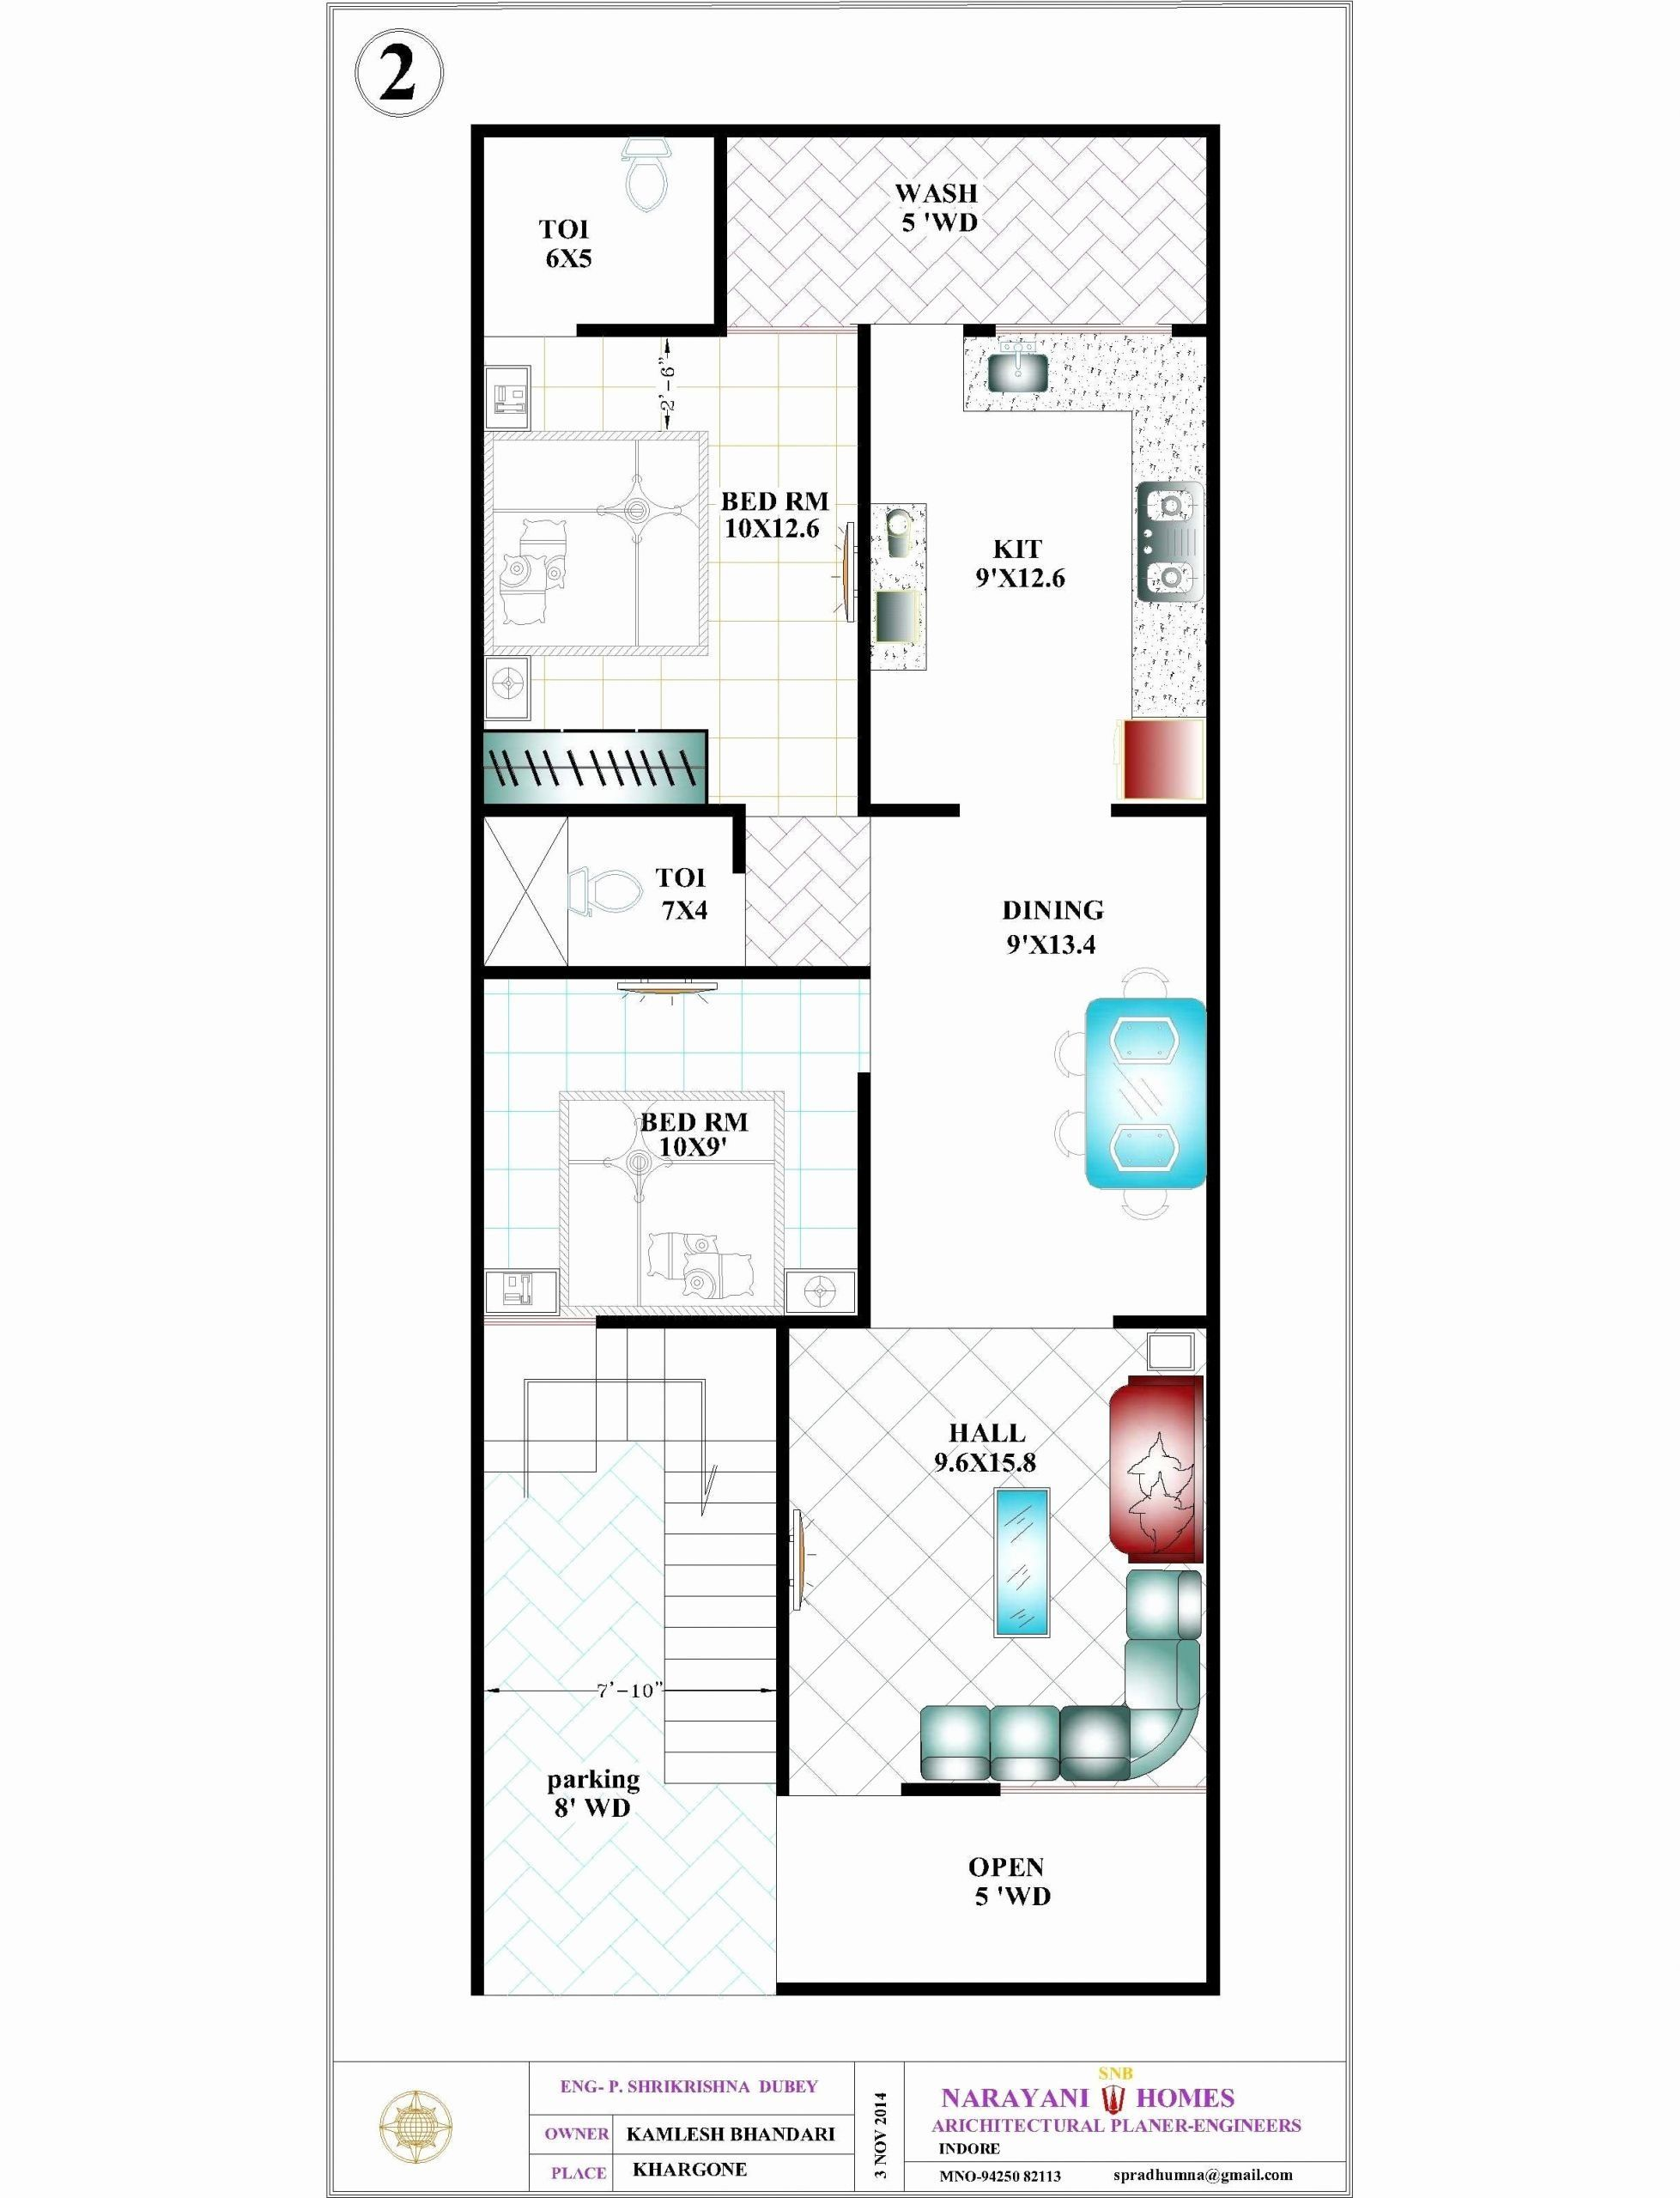 50 X 50 House Plans Beautiful 44 20x50 House Plan For House Plan In 2020 New House Plans 20x30 House Plans 20x40 House Plans